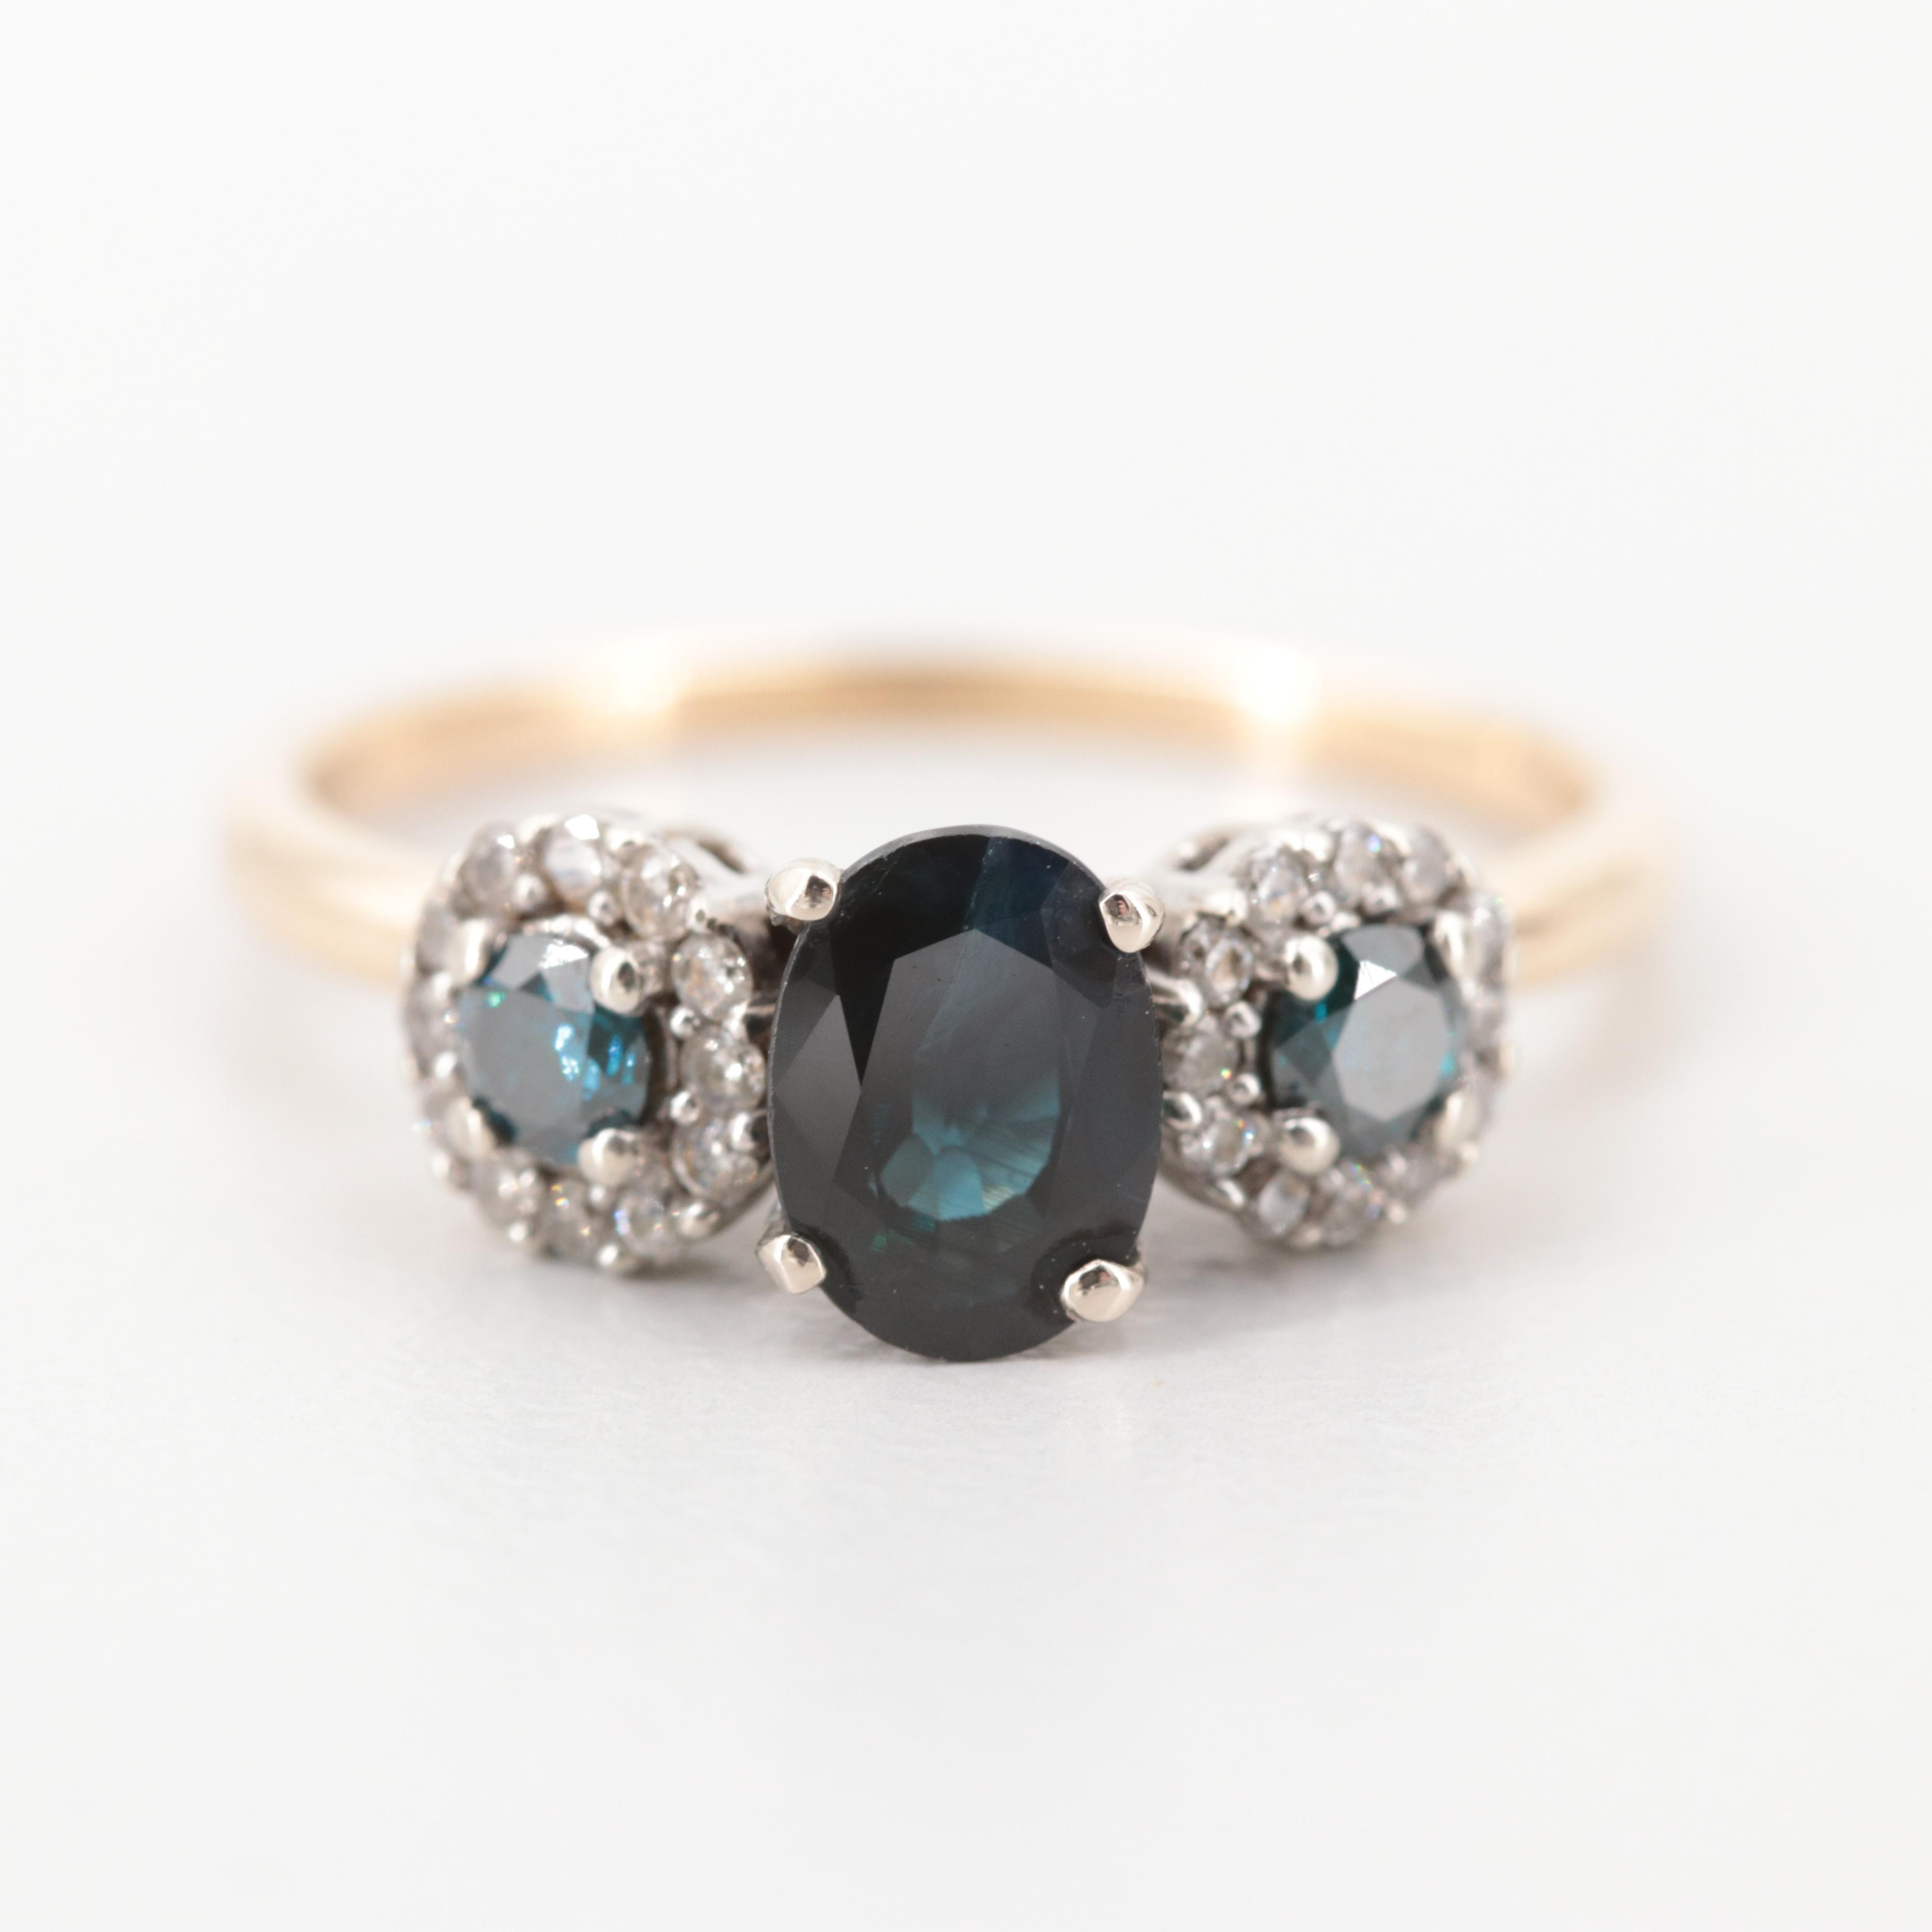 14K Yellow Gold Sapphire and Diamond Ring with Mixed Gold Settings